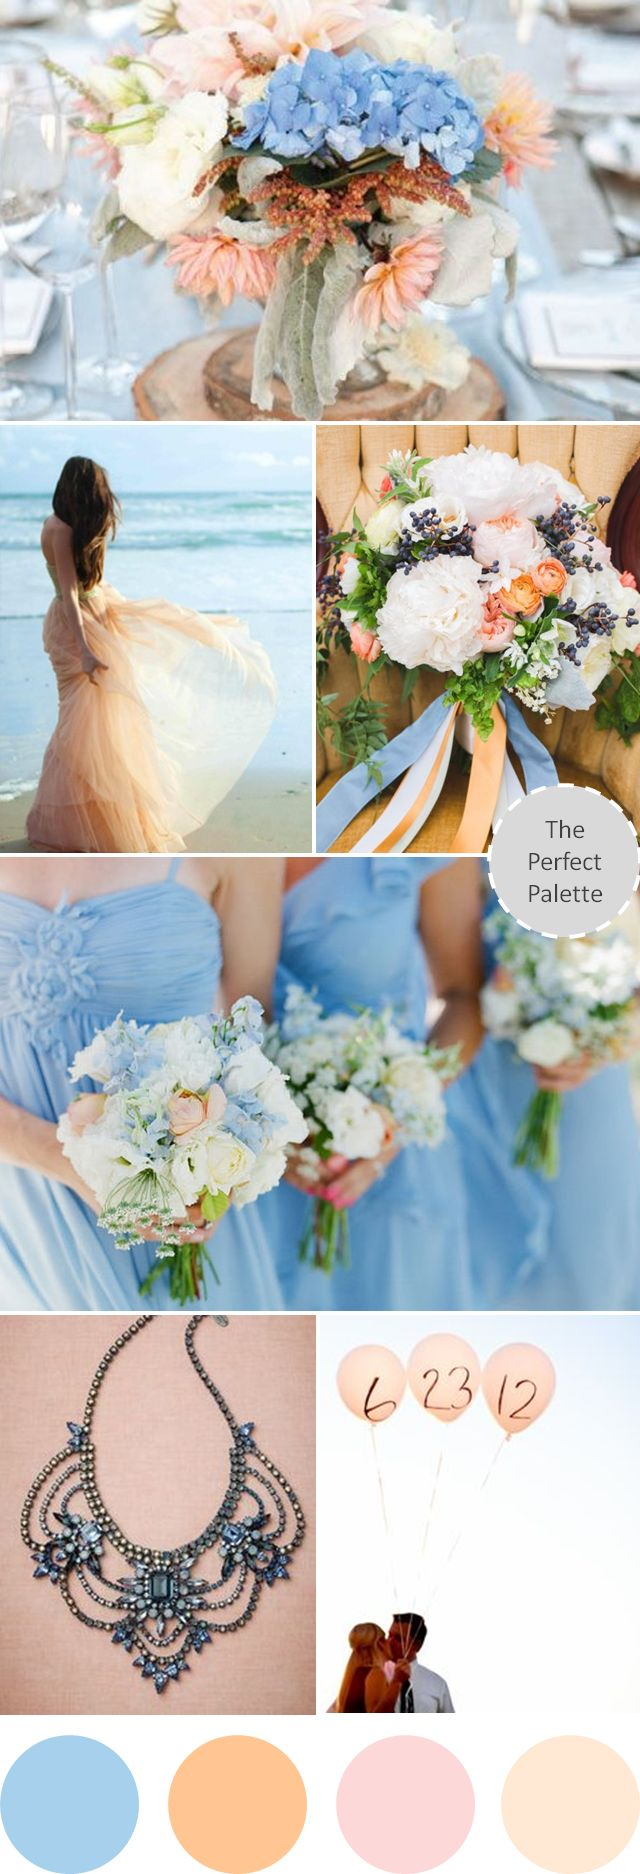 Wedding Colors I Love | Shades of Pale Blue + Peach http://www.theperfectpalette.com/2013/08/wedding-colors-i-love-shades-of-pale.html